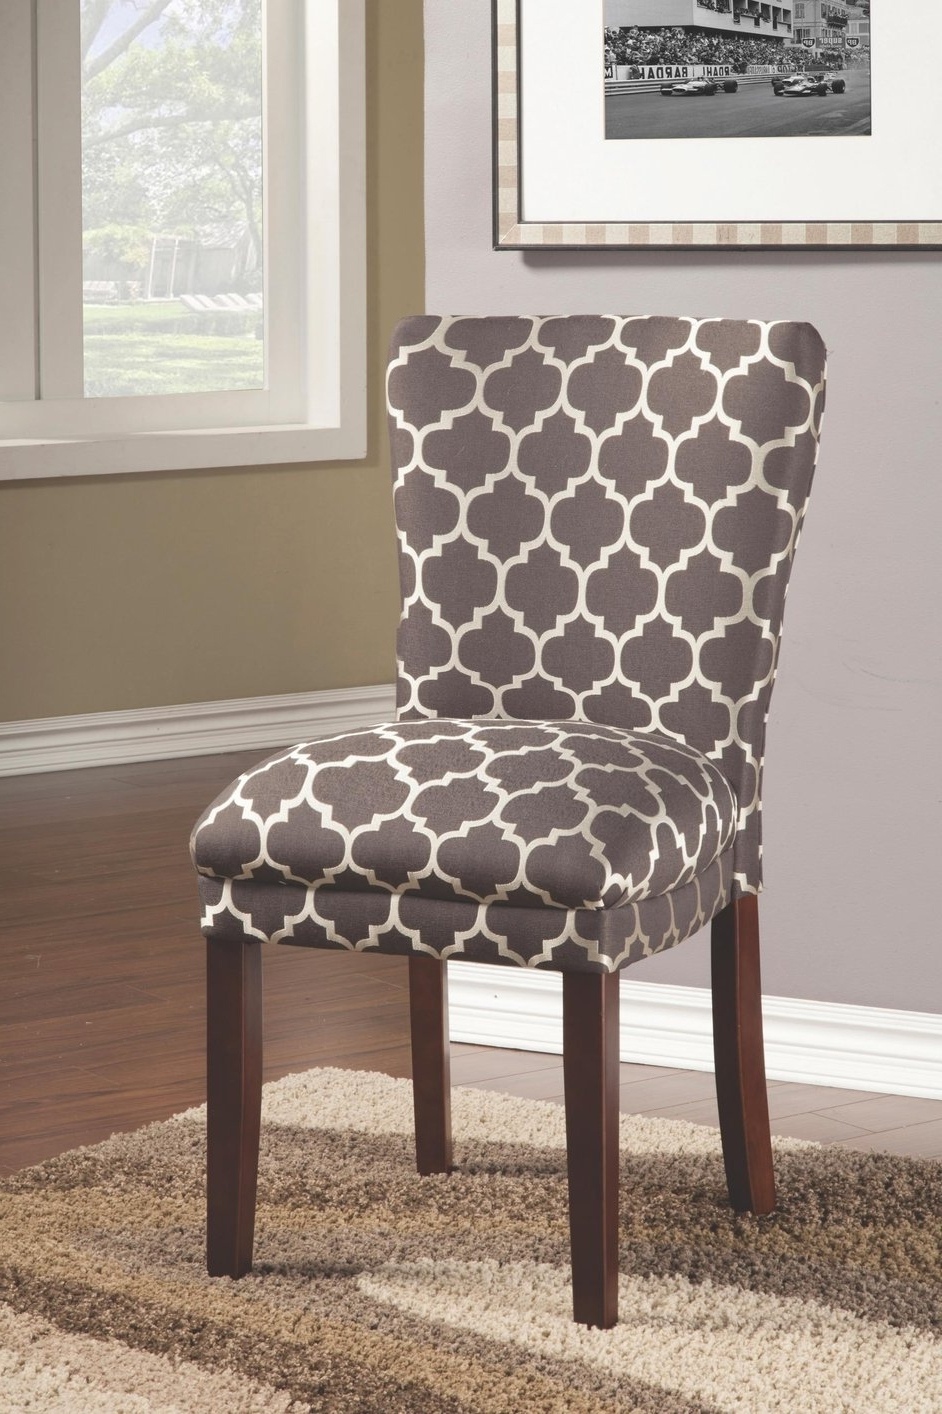 Beige Fabric Dining Chair – Steal A Sofa Furniture Outlet Los Angeles Ca Throughout Newest Fabric Covered Dining Chairs (Gallery 2 of 25)